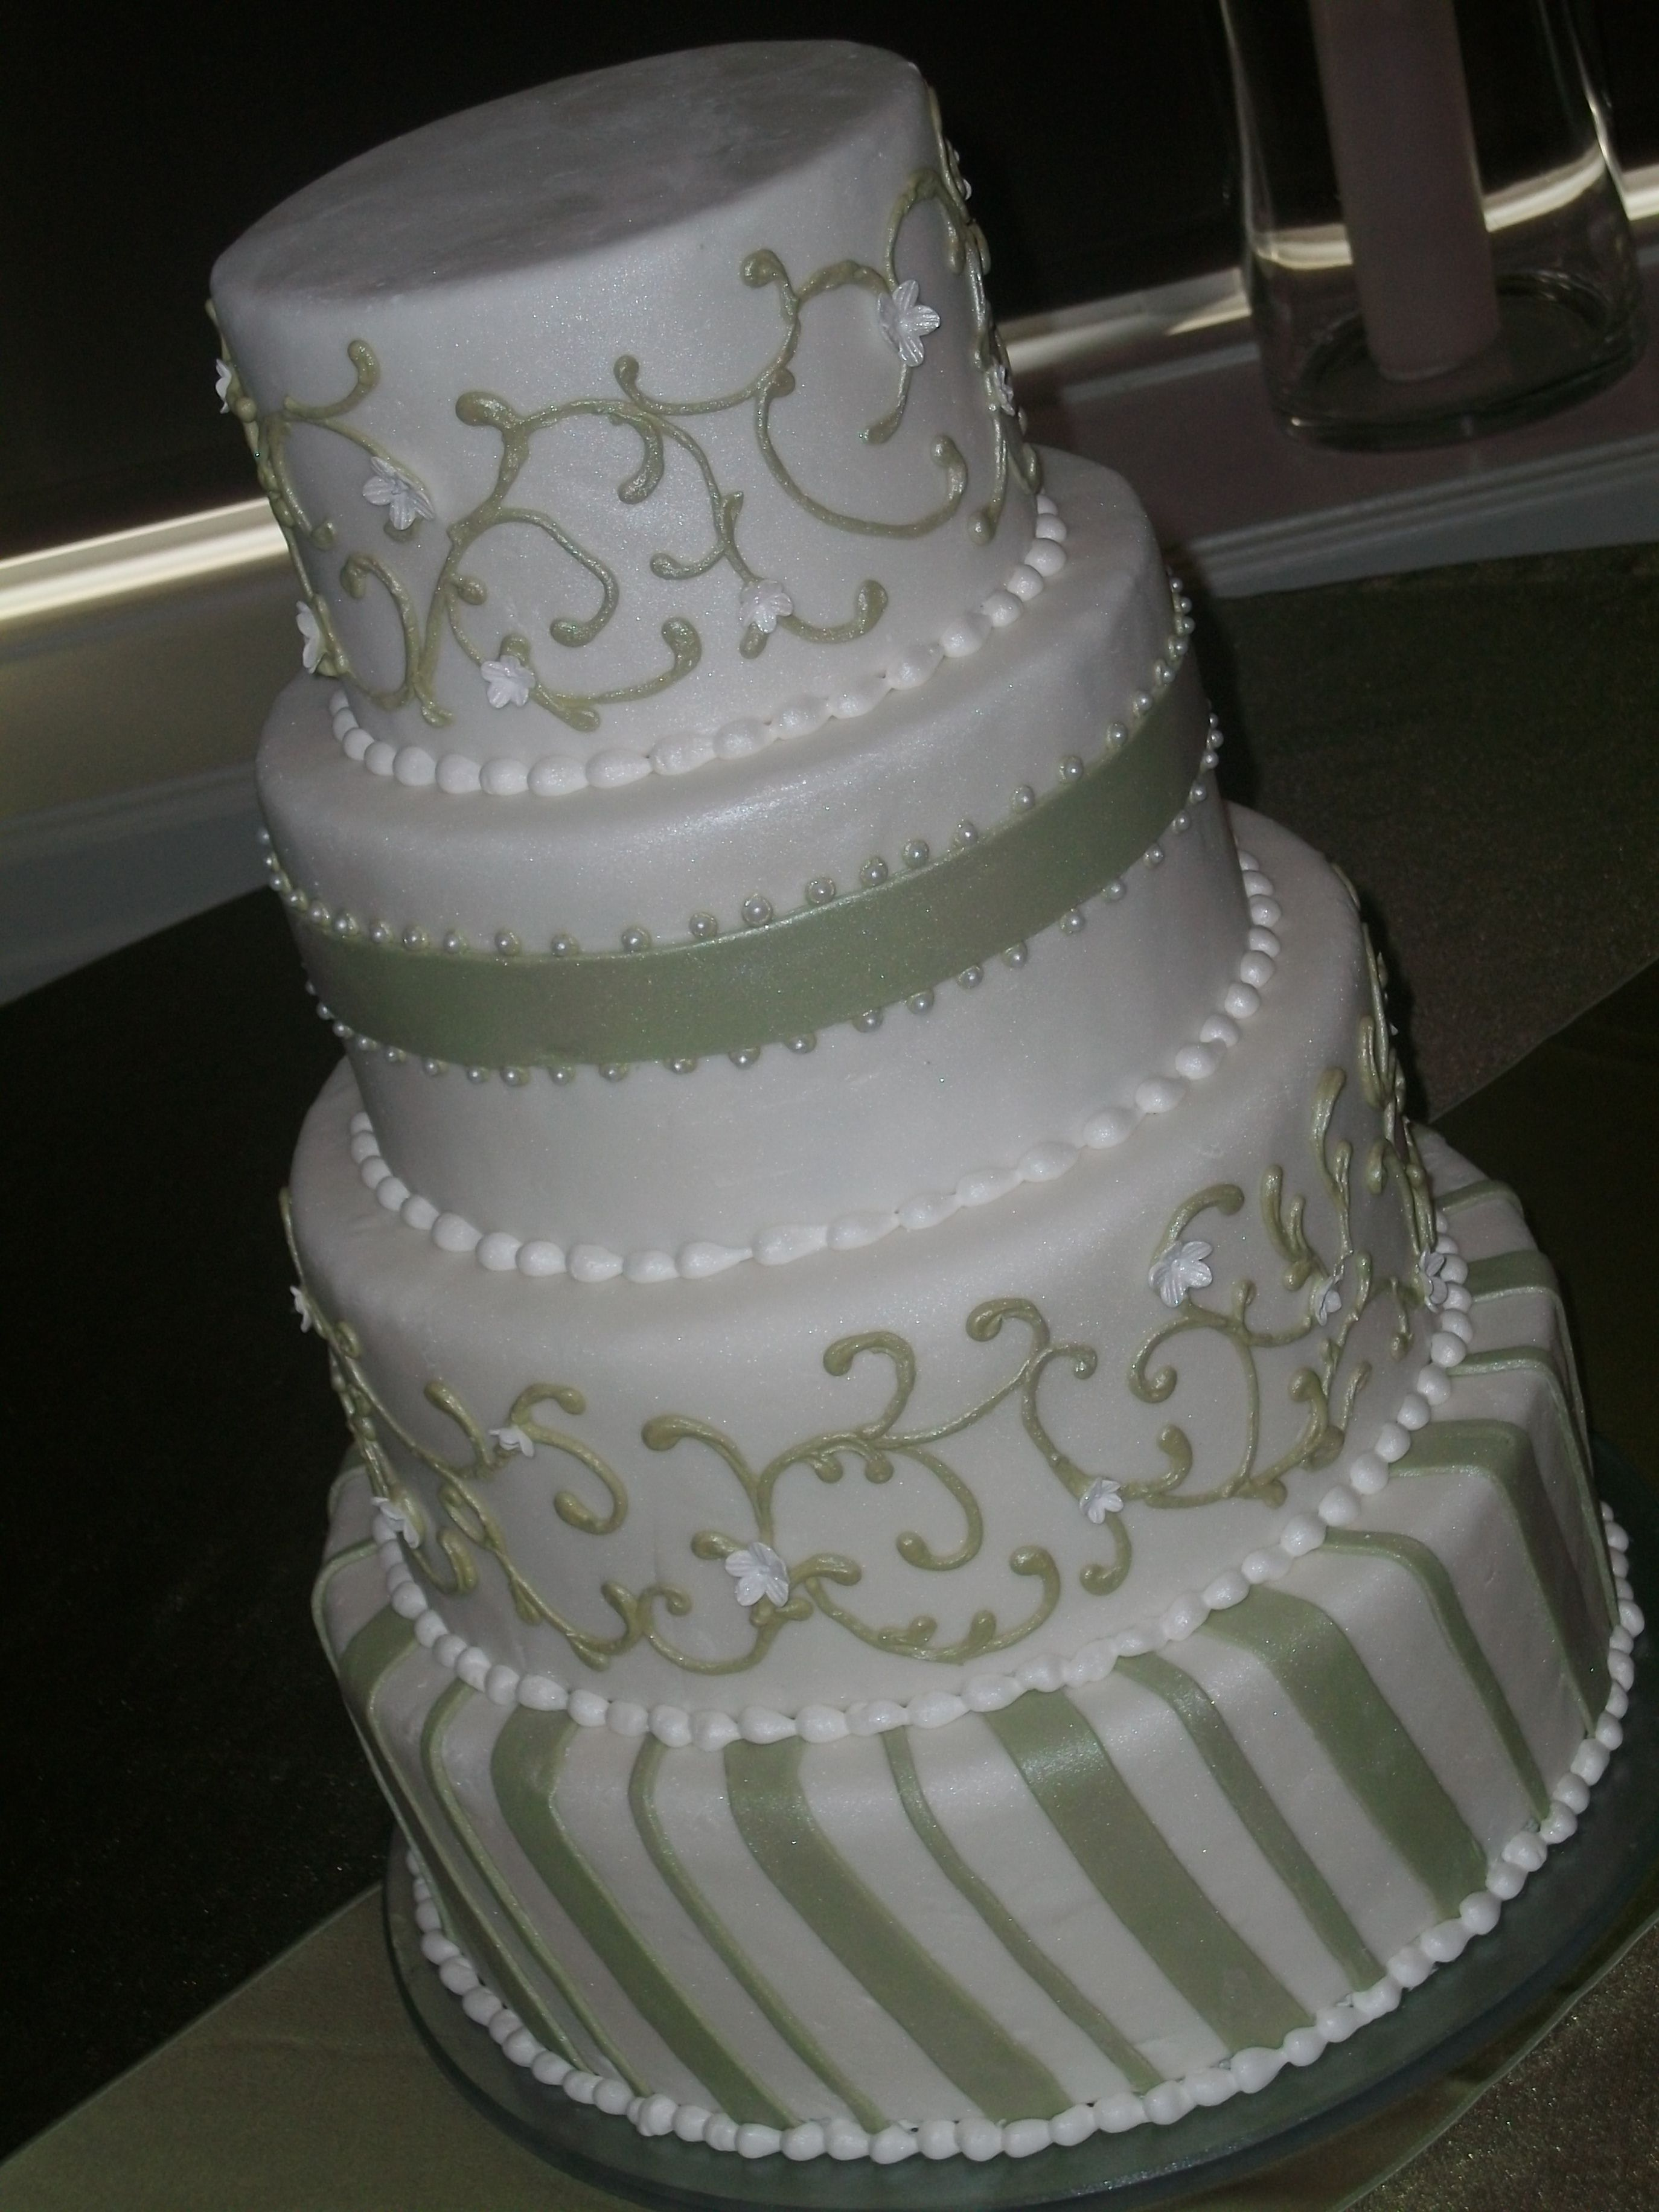 Classic style wedding cake with green accents. Wedding cakes, 4 tier cakes, http://tiered-expressions.com